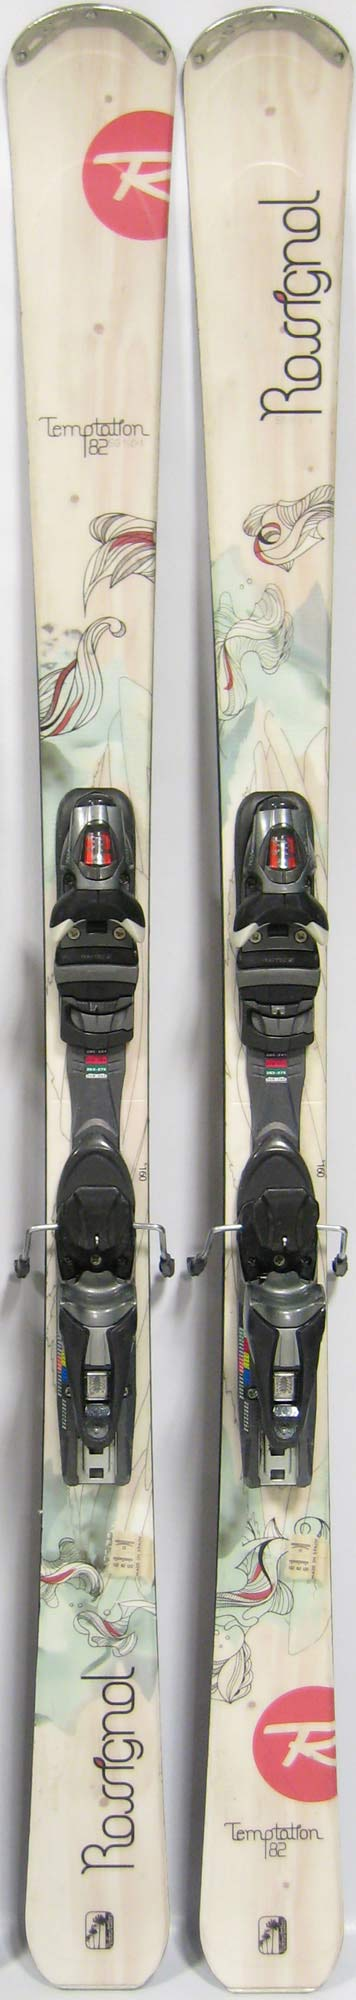 Topsheets of 2012 Rossignol Temptation 82 Skis For Sale